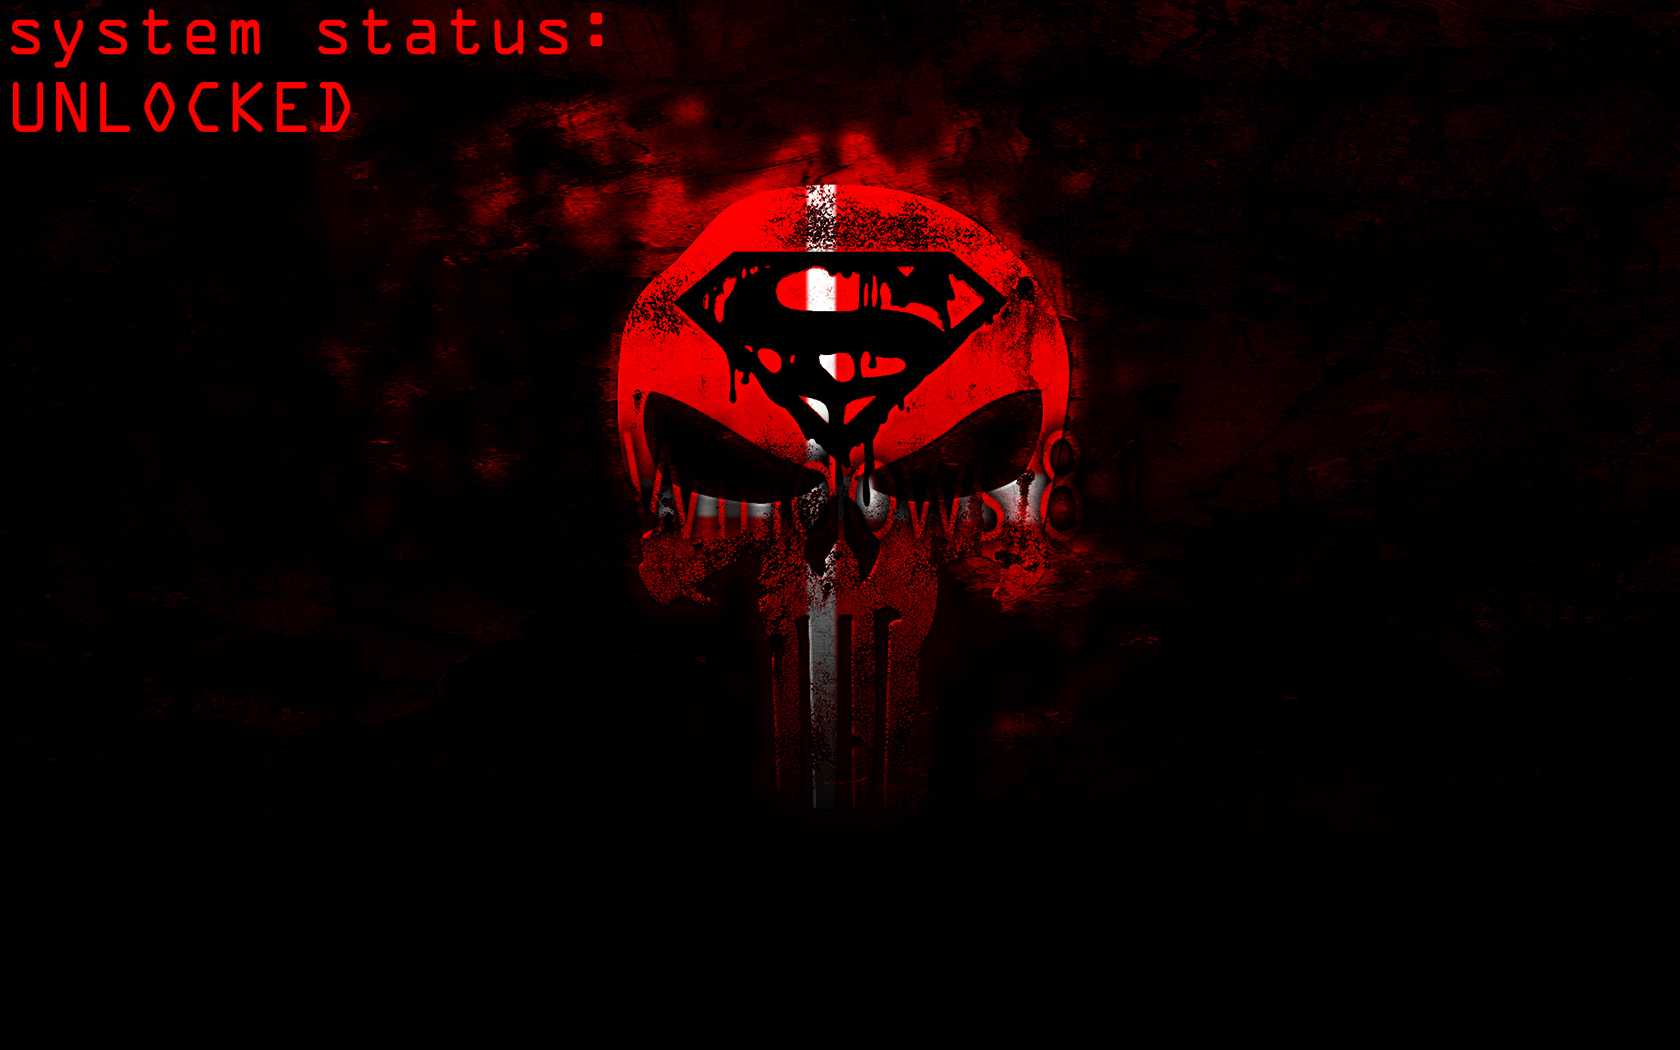 superman_punisher_logo_wallpaper_2_by_s1nwithm3-d7mfuyd.jpg